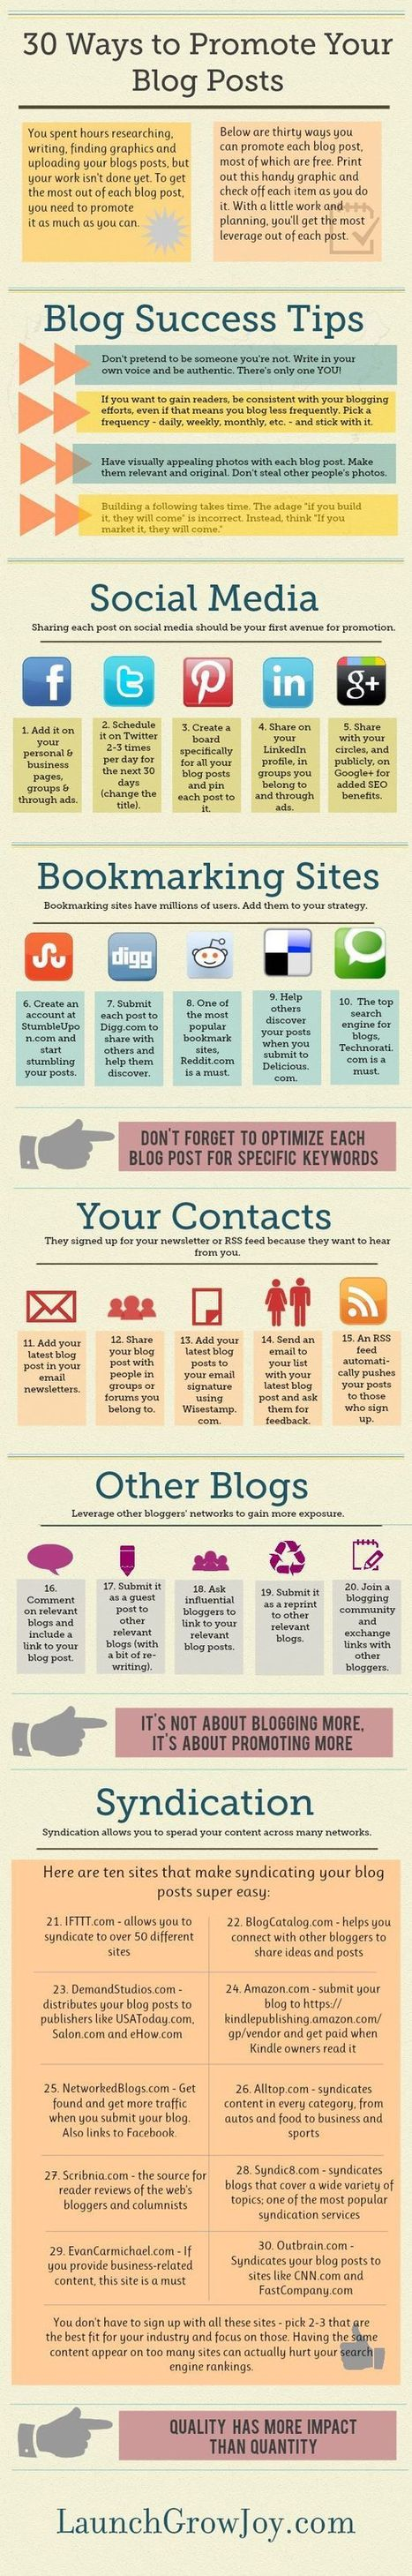 30 ways to promote your blog posts | Irresistible Content | Scoop.it